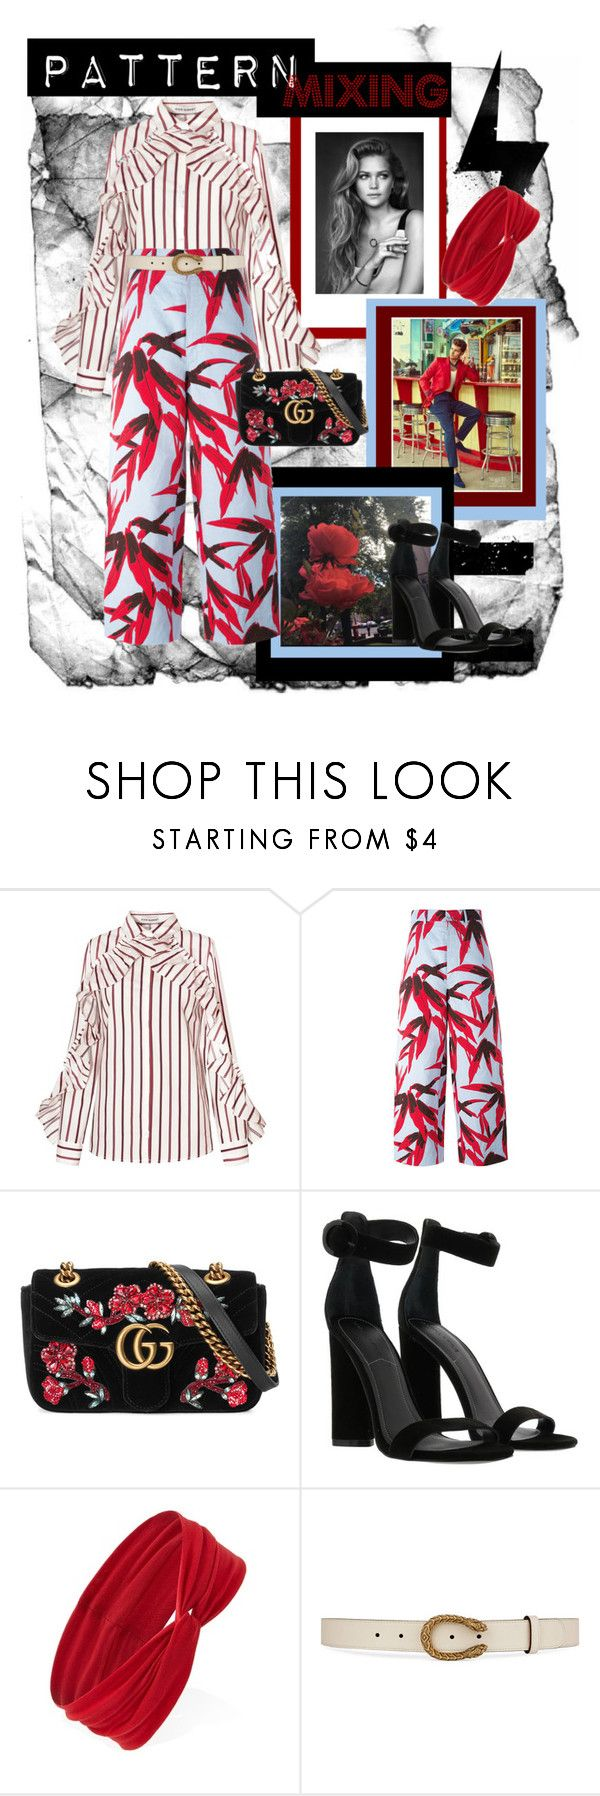 """""""Patternmixing, by sterre"""" by sterrevkaam ❤ liked on Polyvore featuring Marni, Gucci, Kendall + Kylie and Forever 21"""